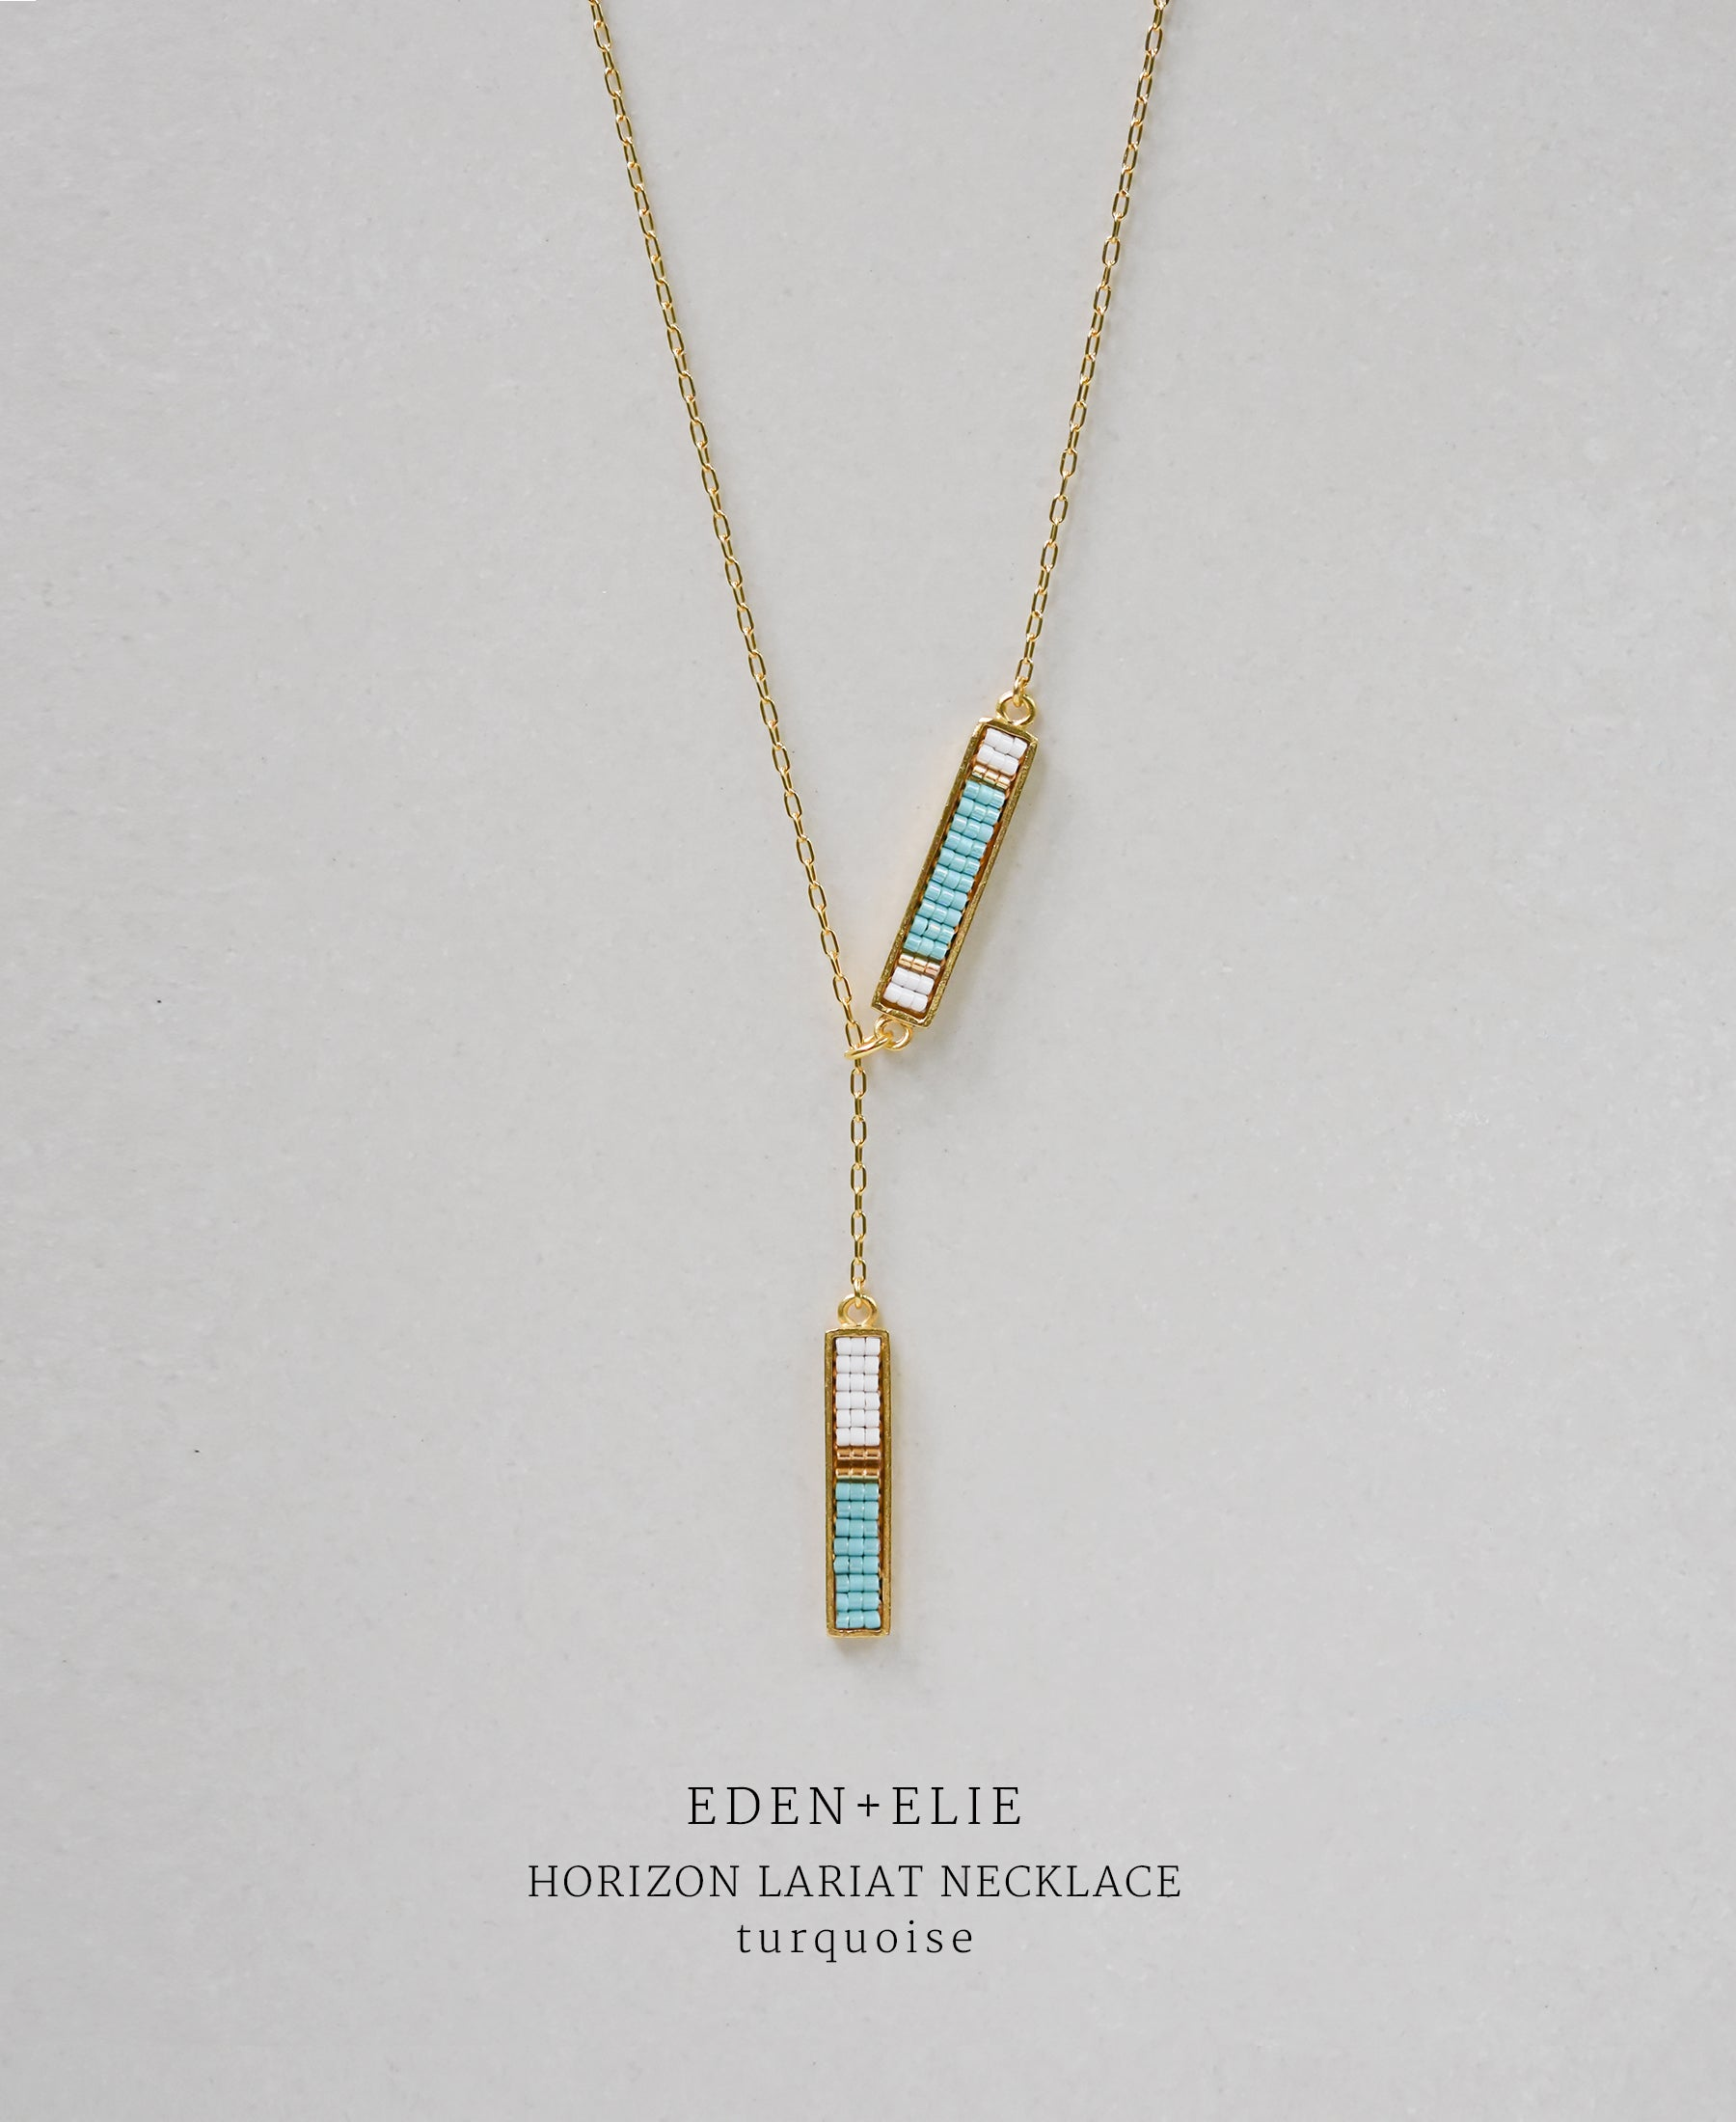 EDEN + ELIE Horizon Lariat necklace - turquoise